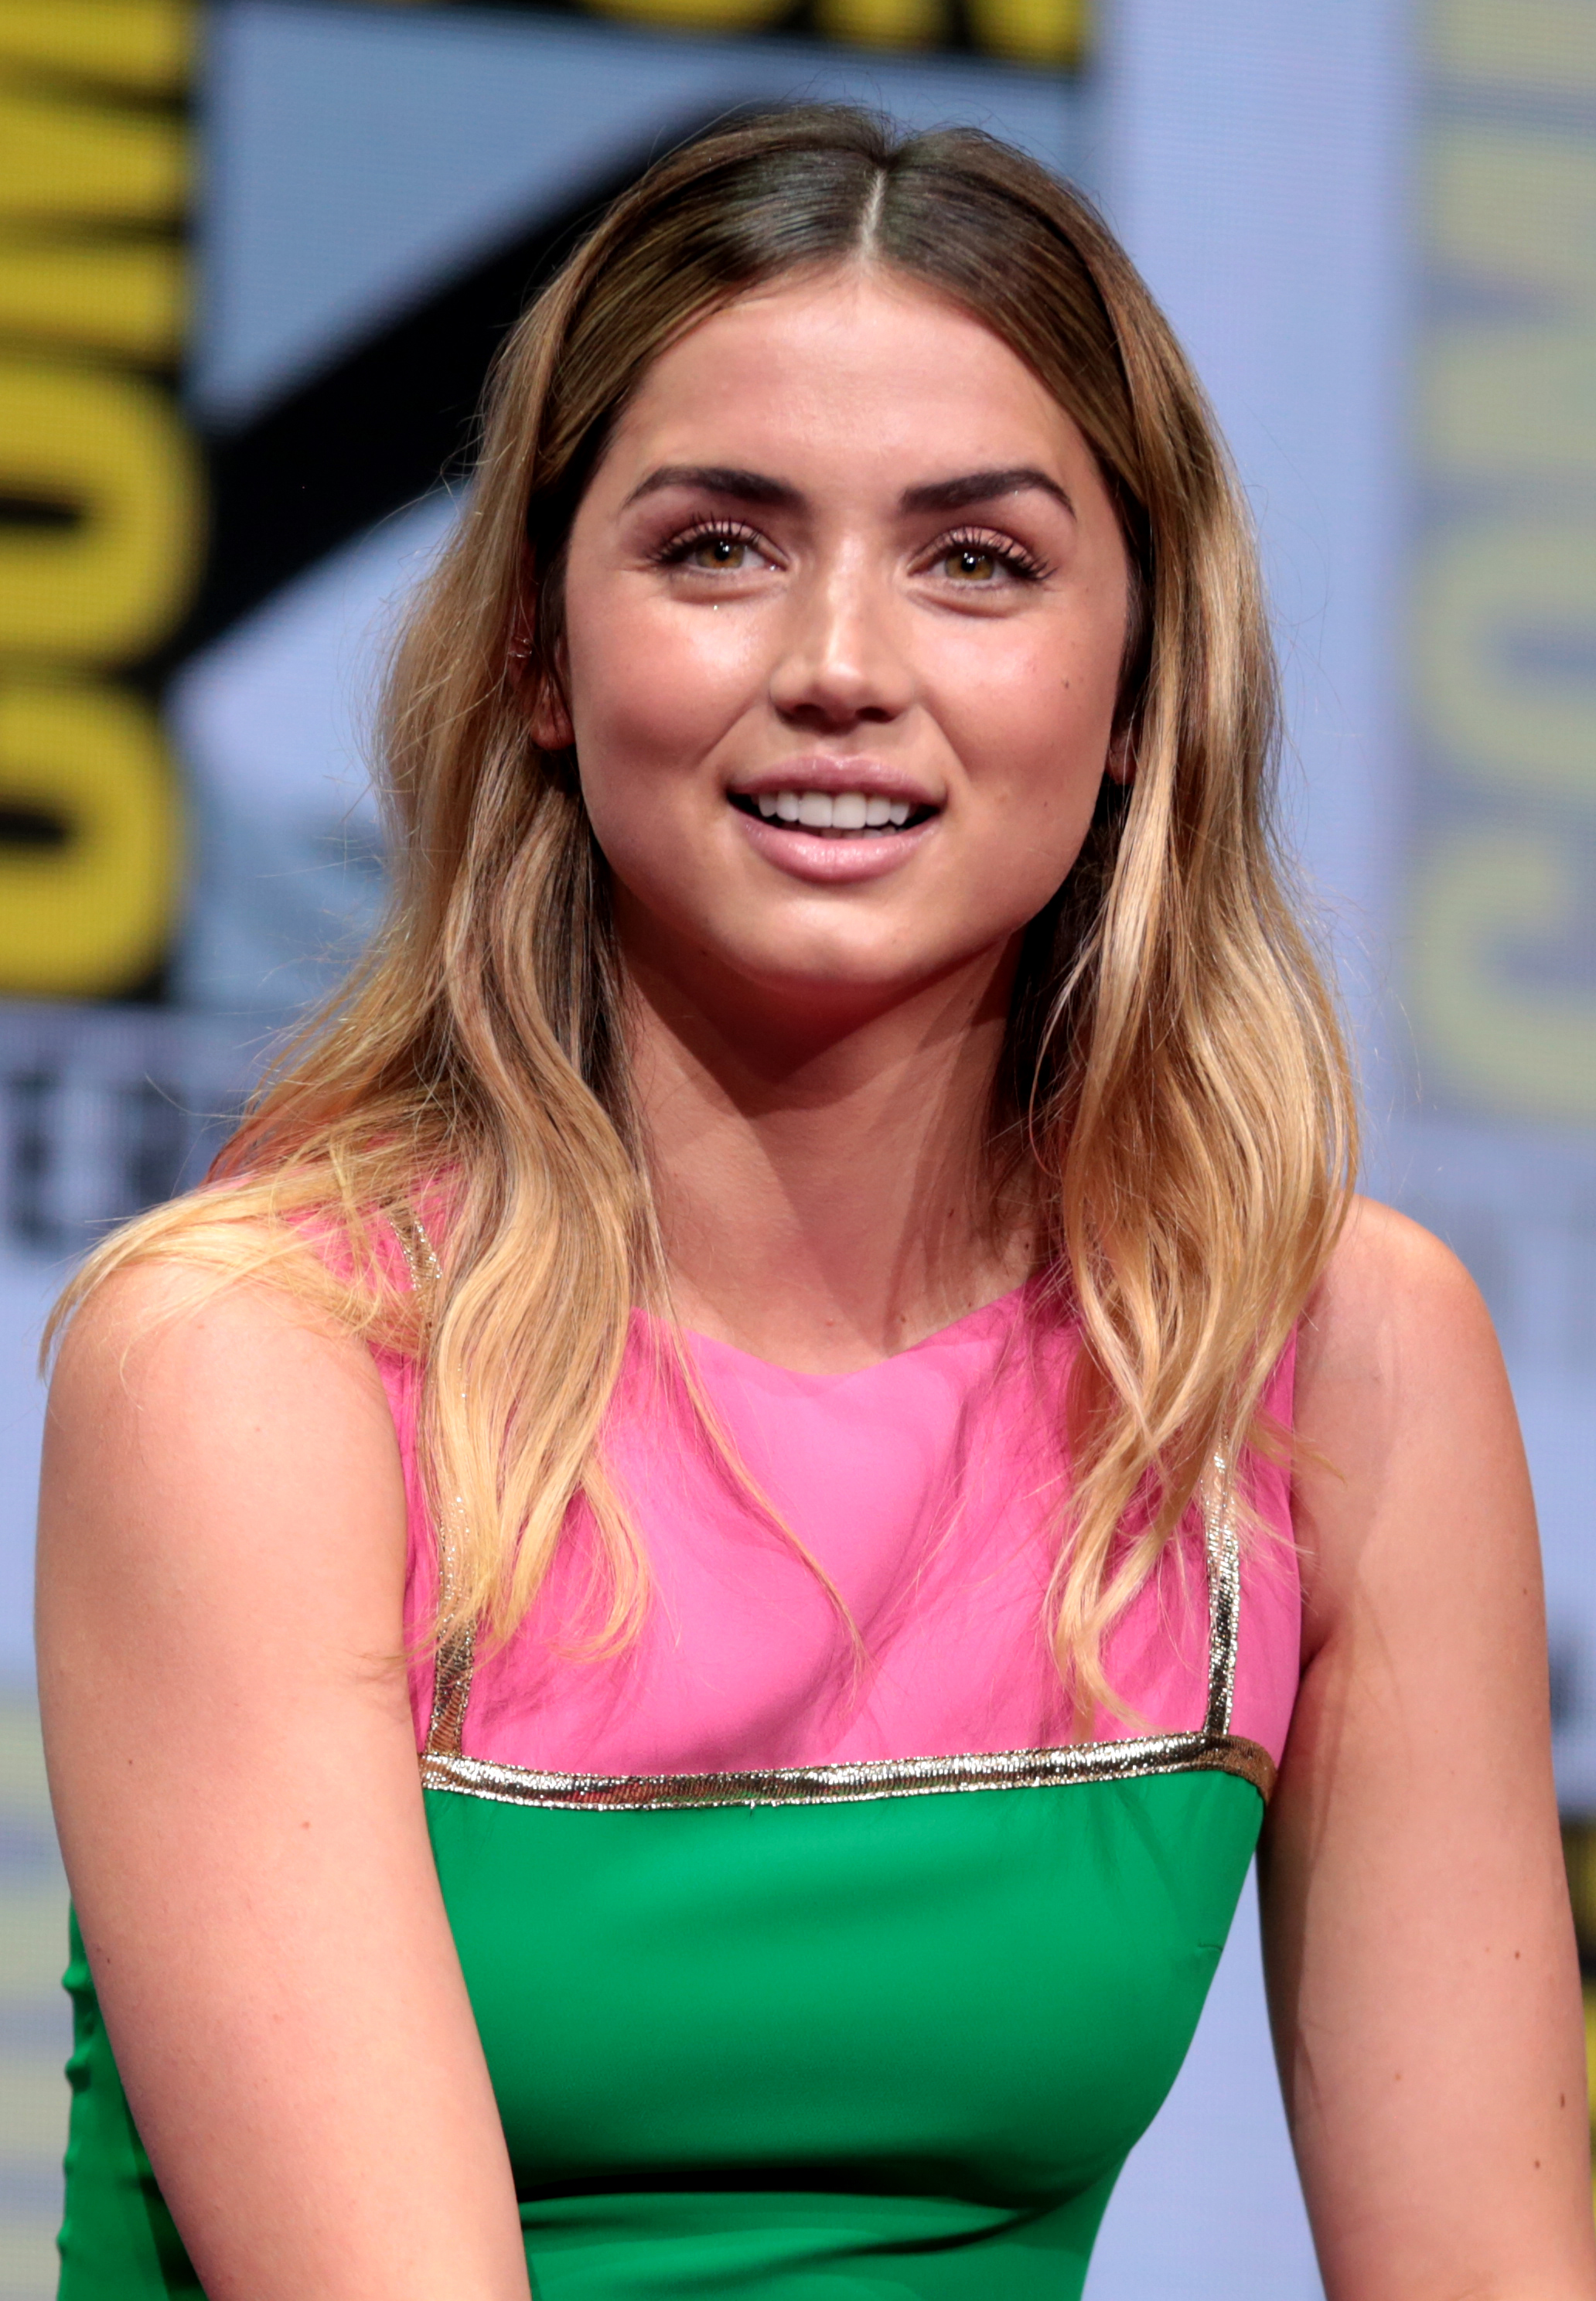 Snapchat Ana de Armas nude (21 foto and video), Ass, Bikini, Instagram, lingerie 2006